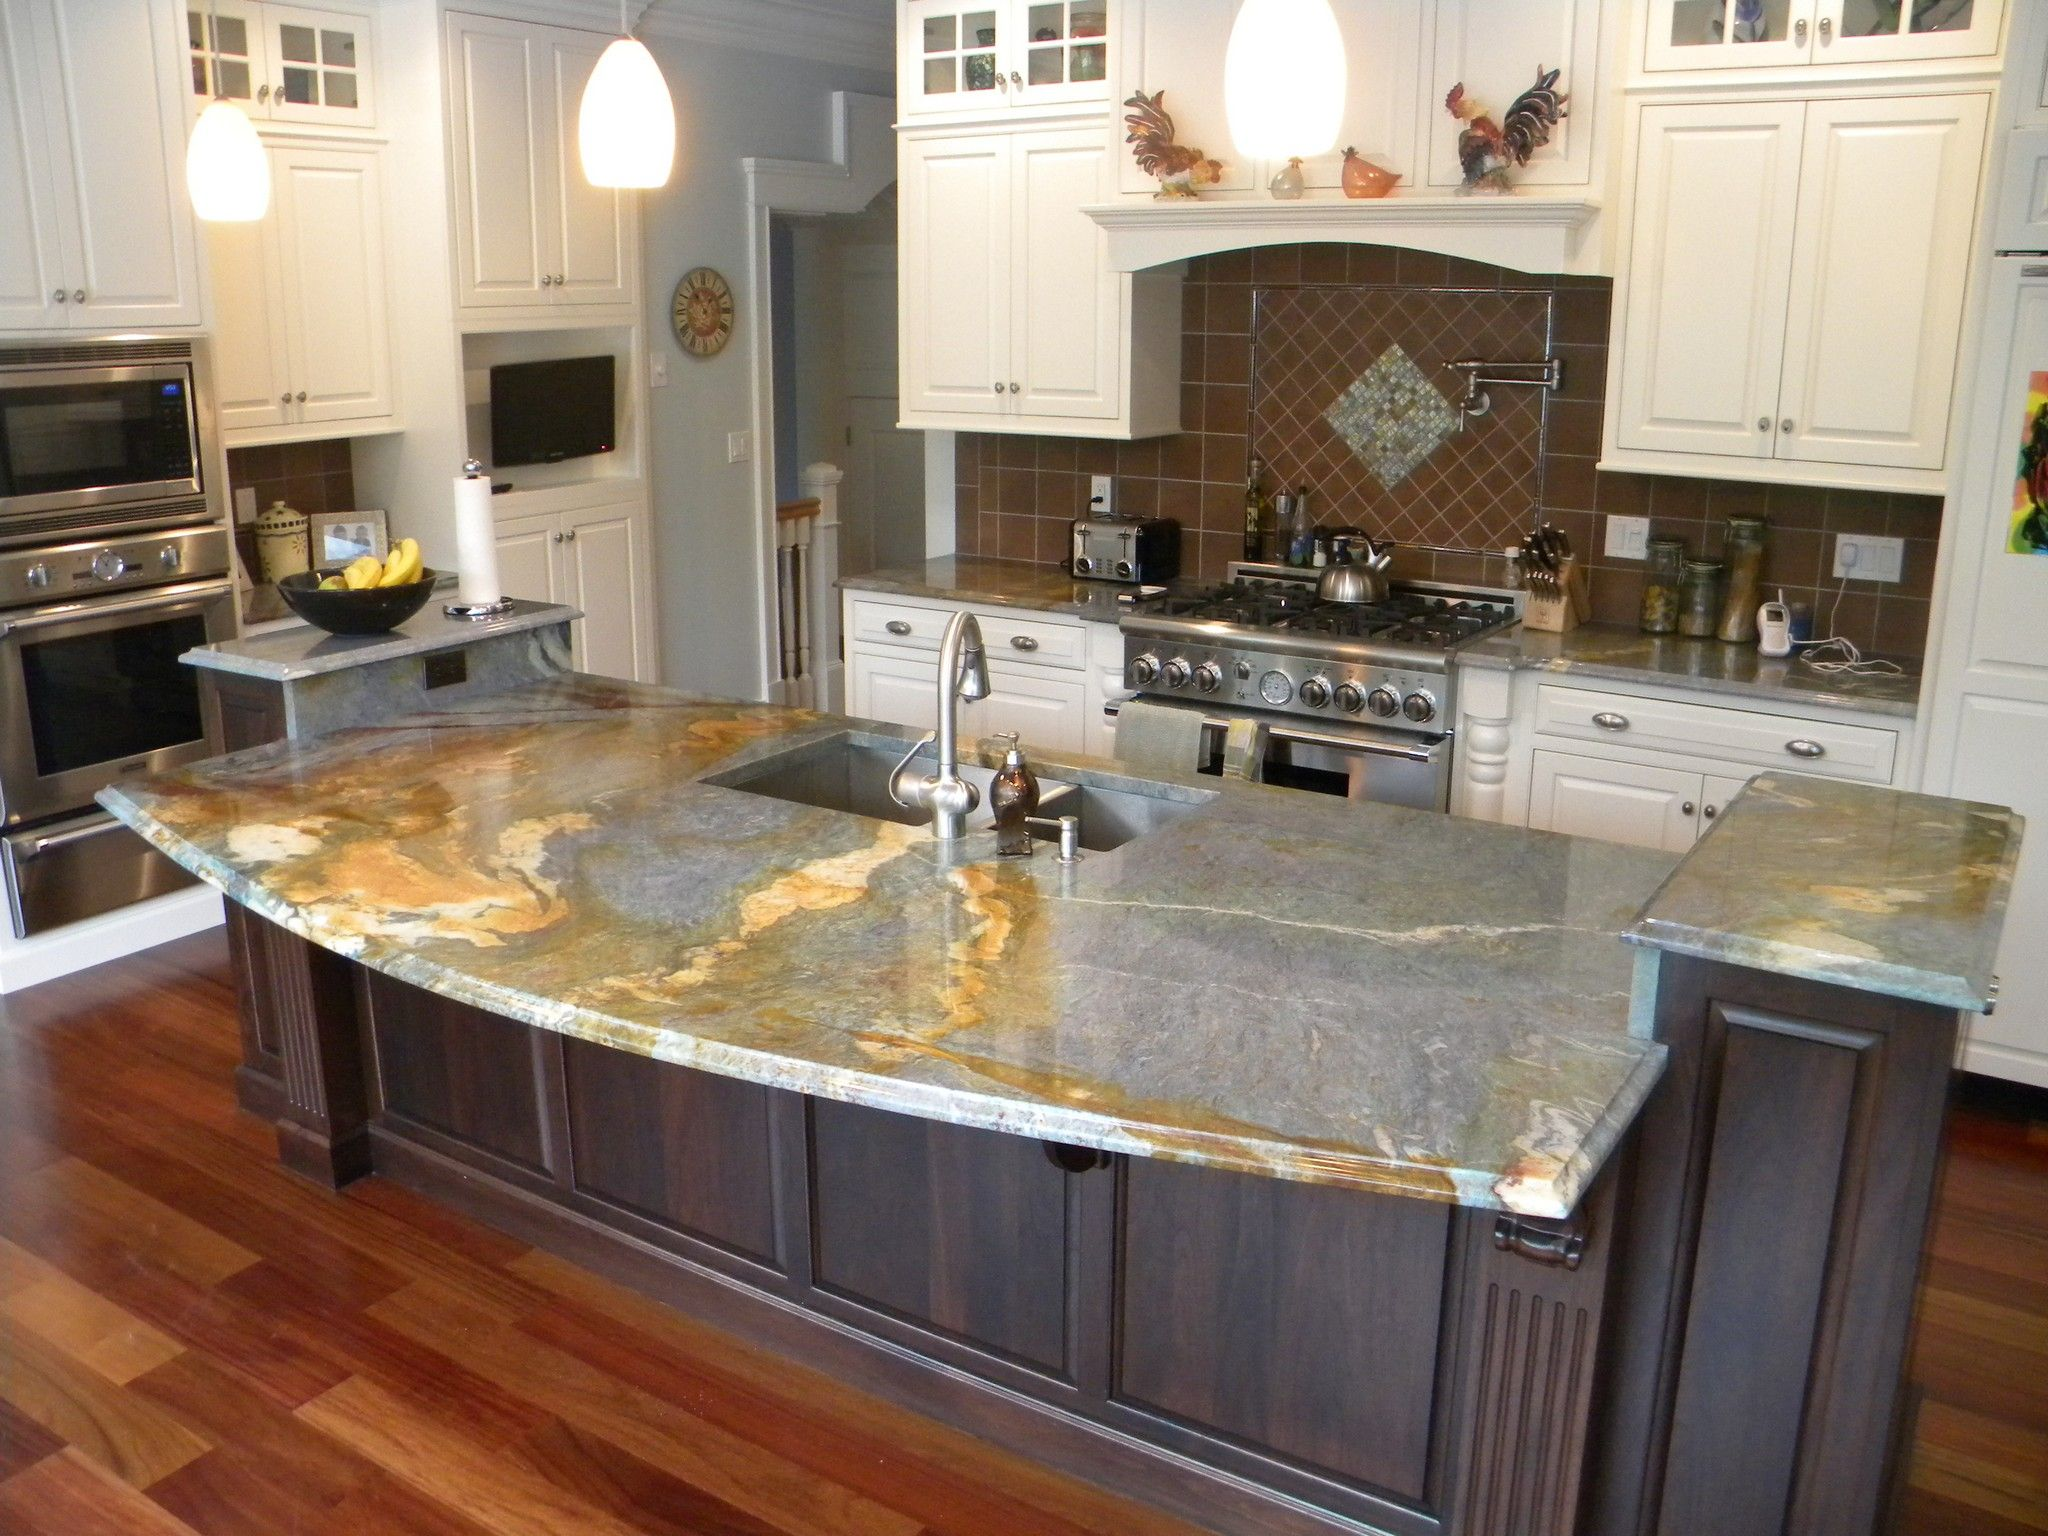 Waterfall countertop granite countertops marble What is the whitest quartz countertop